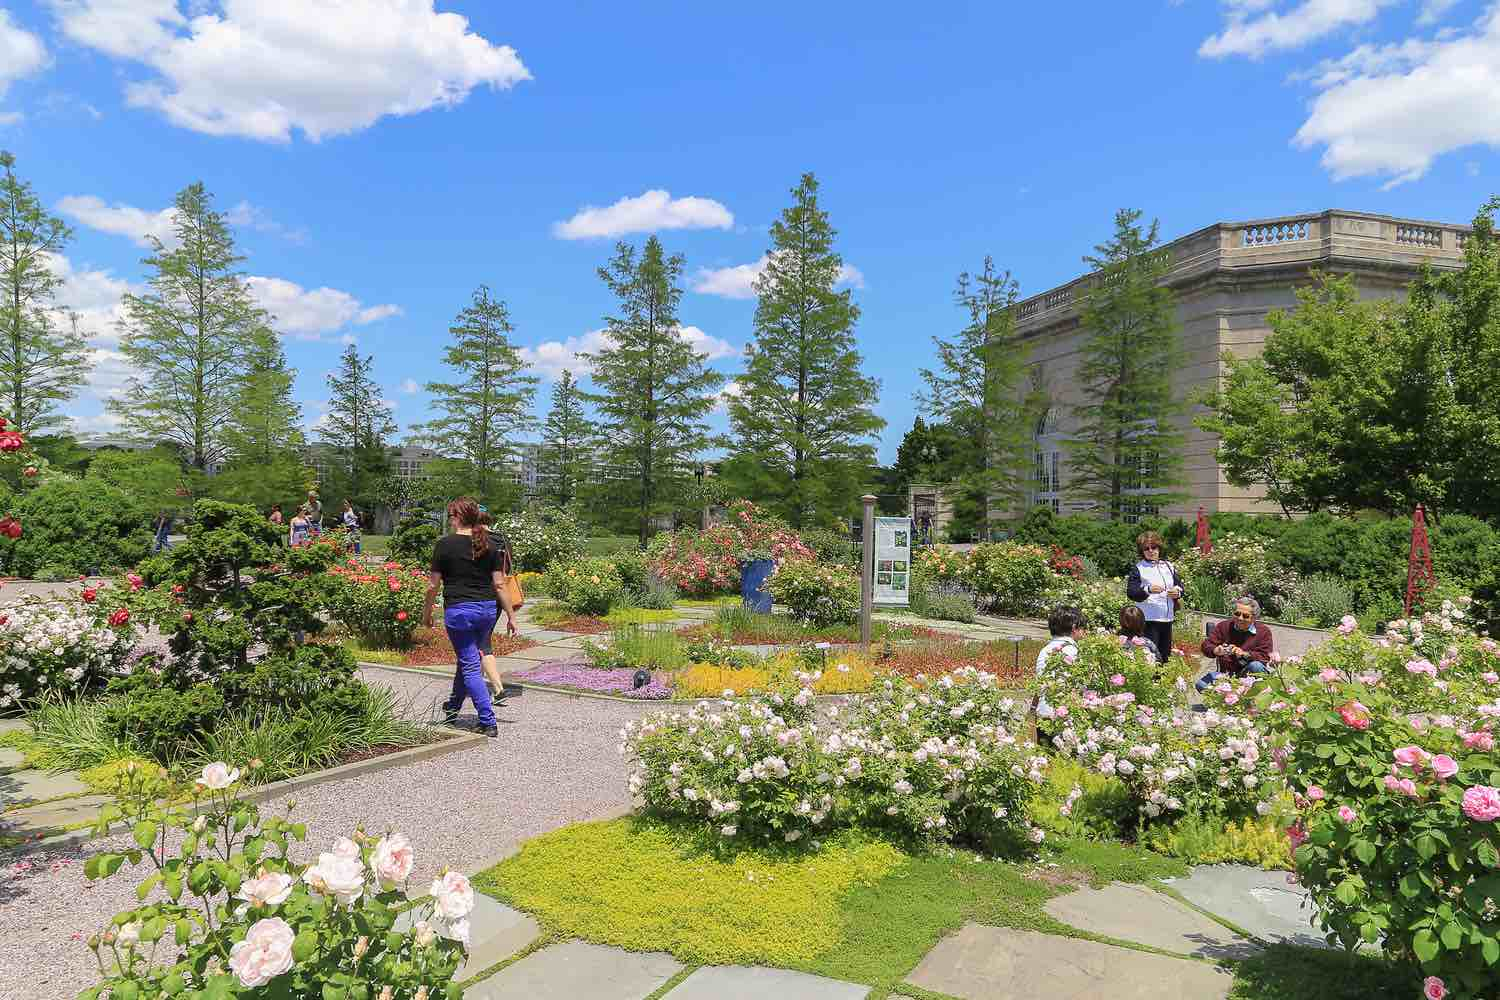 Outdoor of national garden in Botanic Garden with blue sky and cloud. People walking around to see the difference kinds of tree and flower